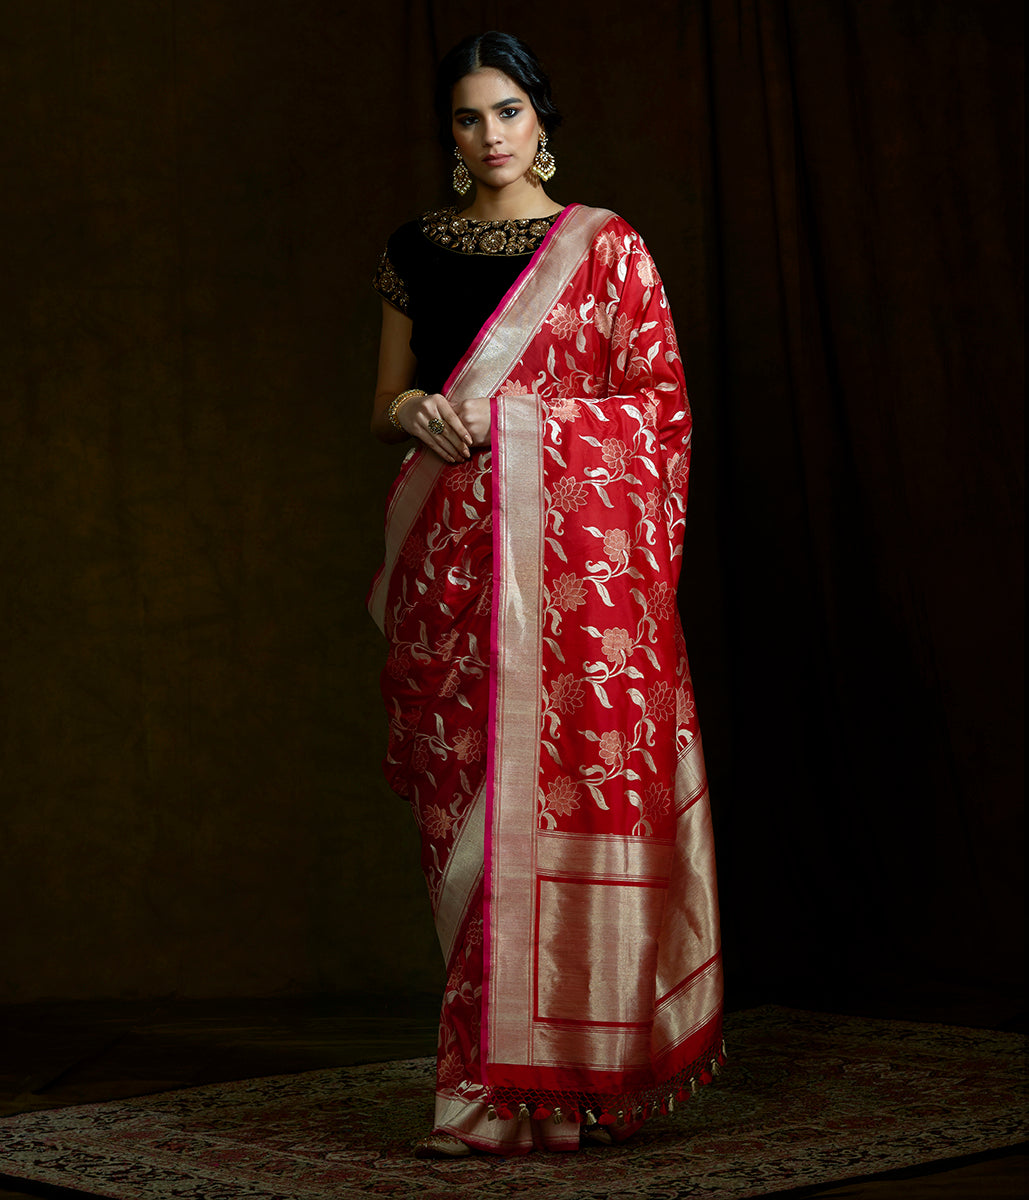 Bright red sona rupa banarasi saree with floral jaal and meenkari detailing